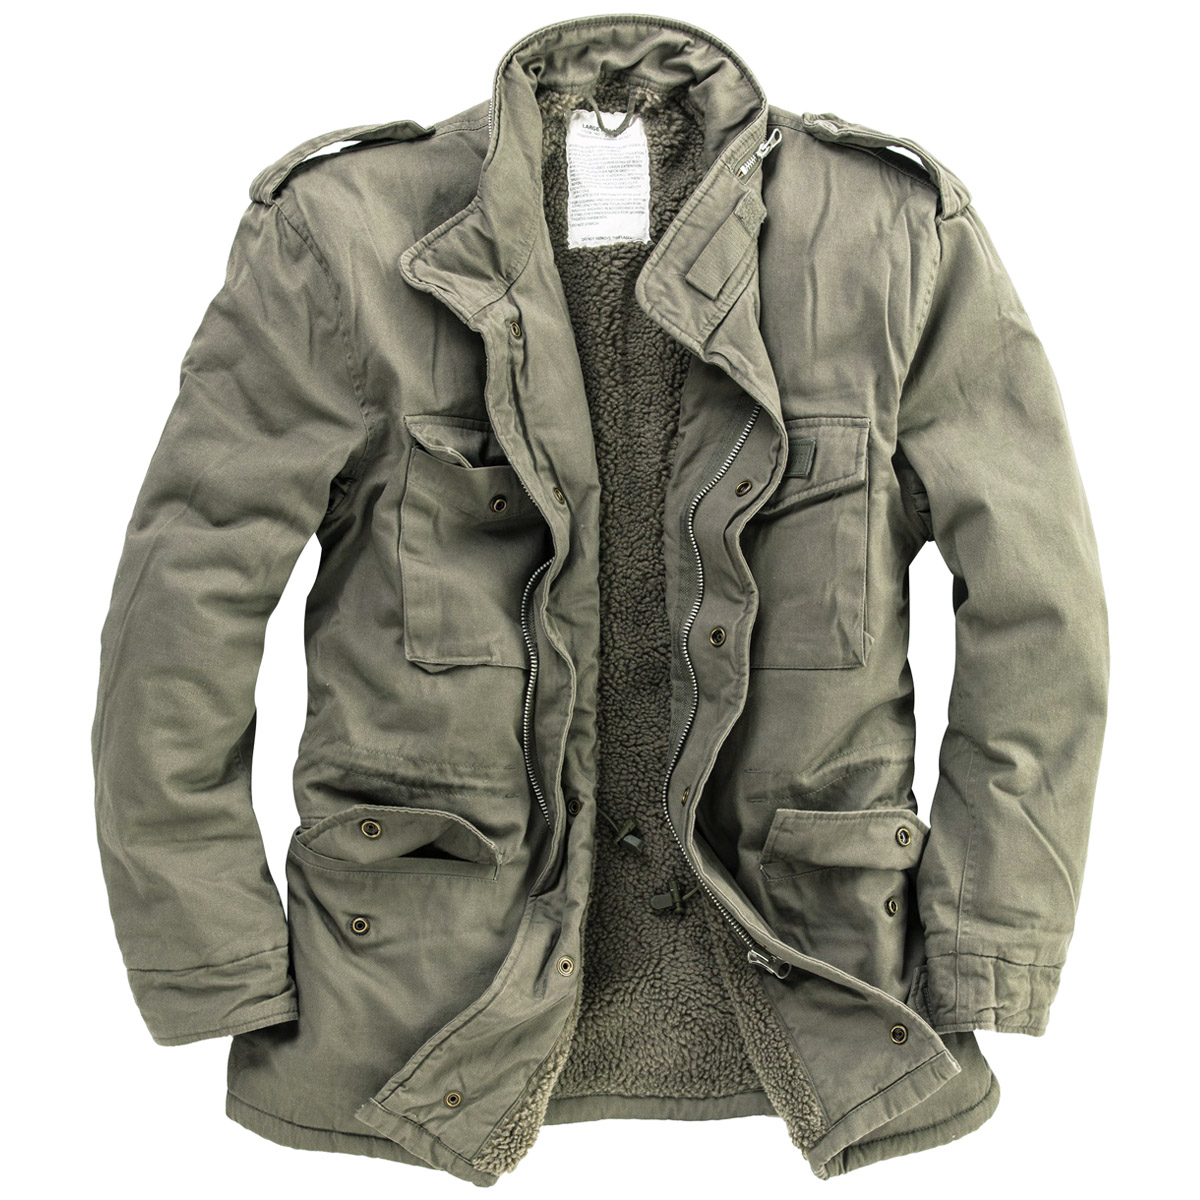 surplus paratrooper winter mens jacket m65 army military. Black Bedroom Furniture Sets. Home Design Ideas